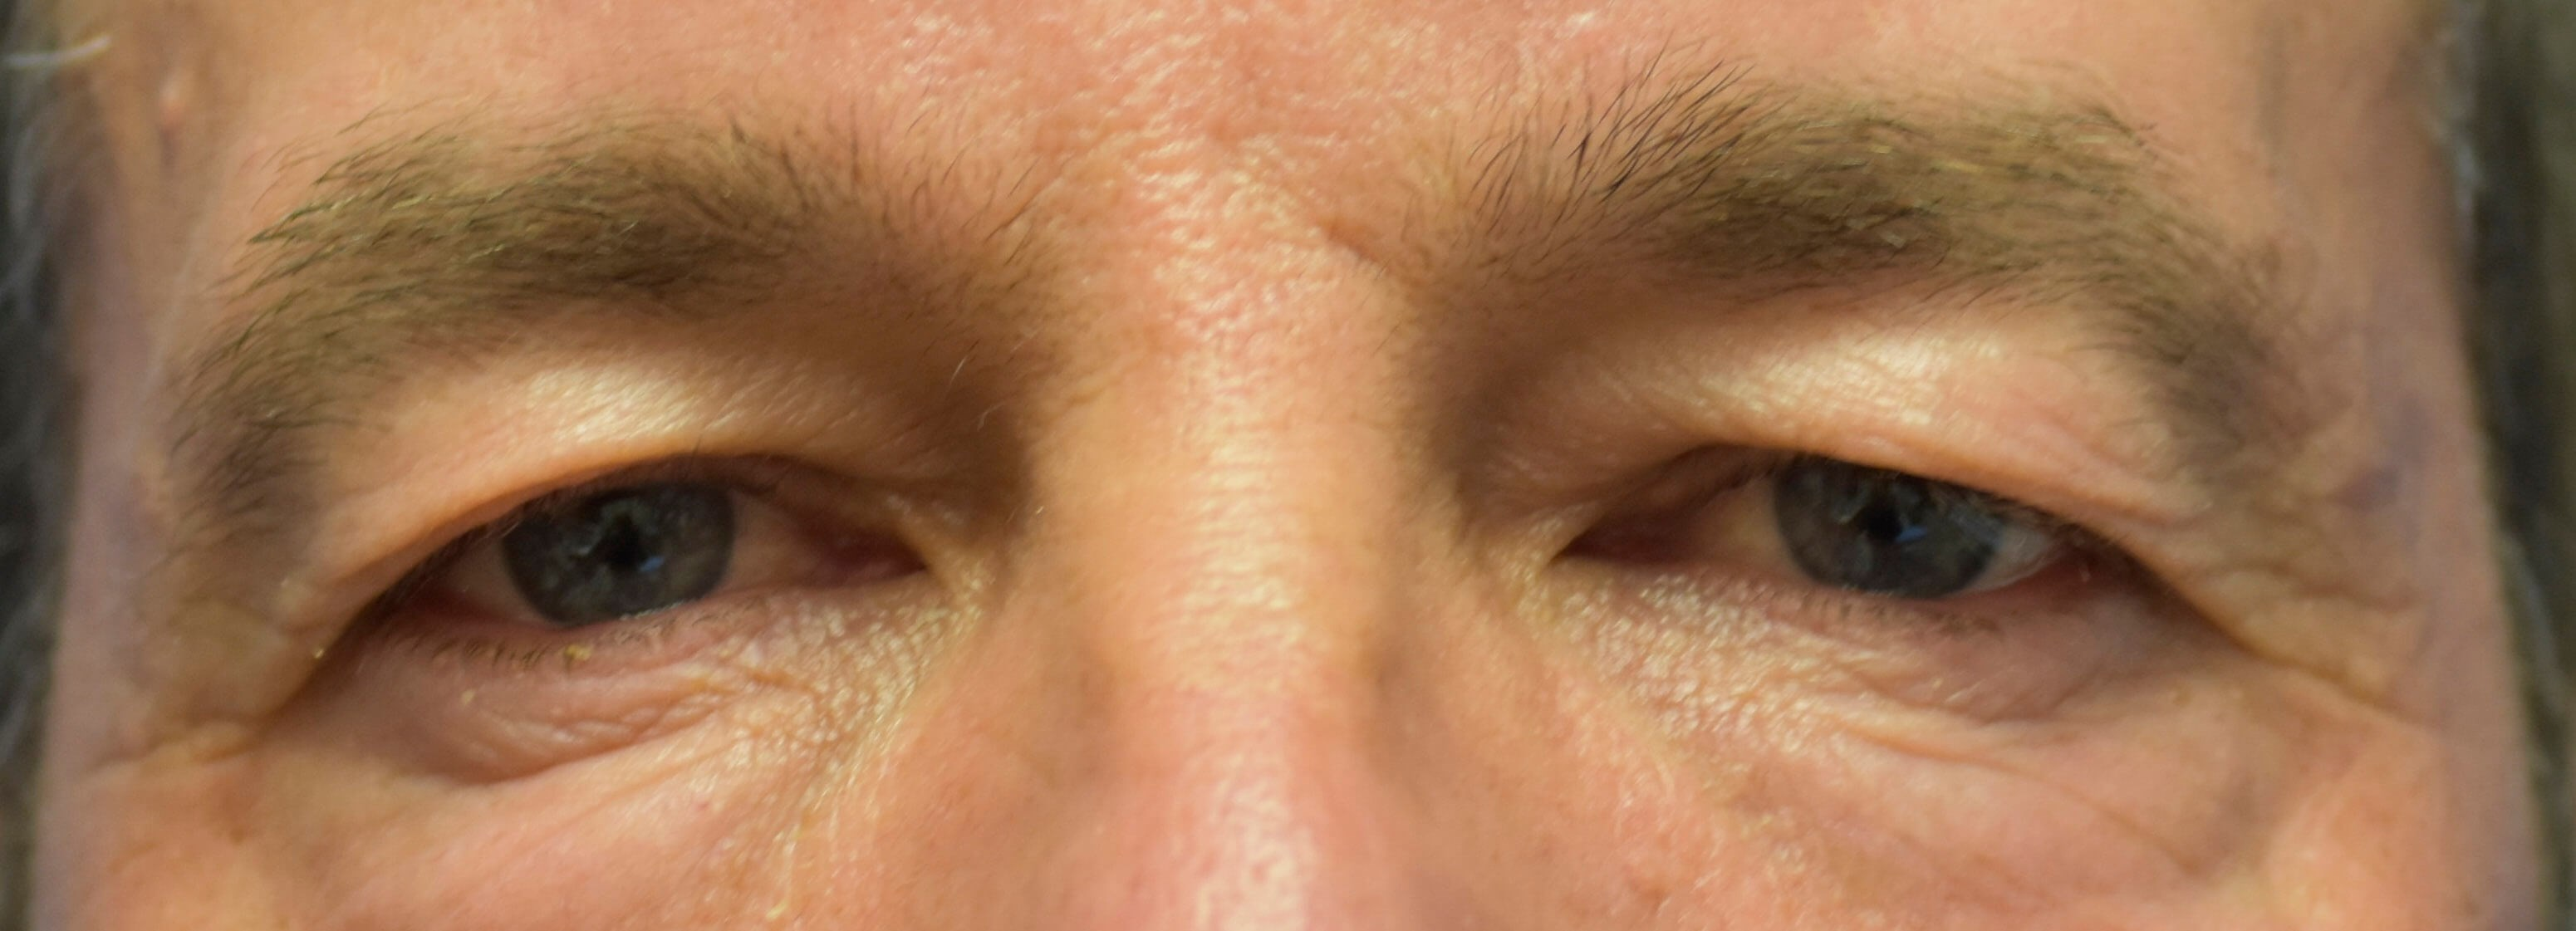 Eyelid surgery Oklahoma Before